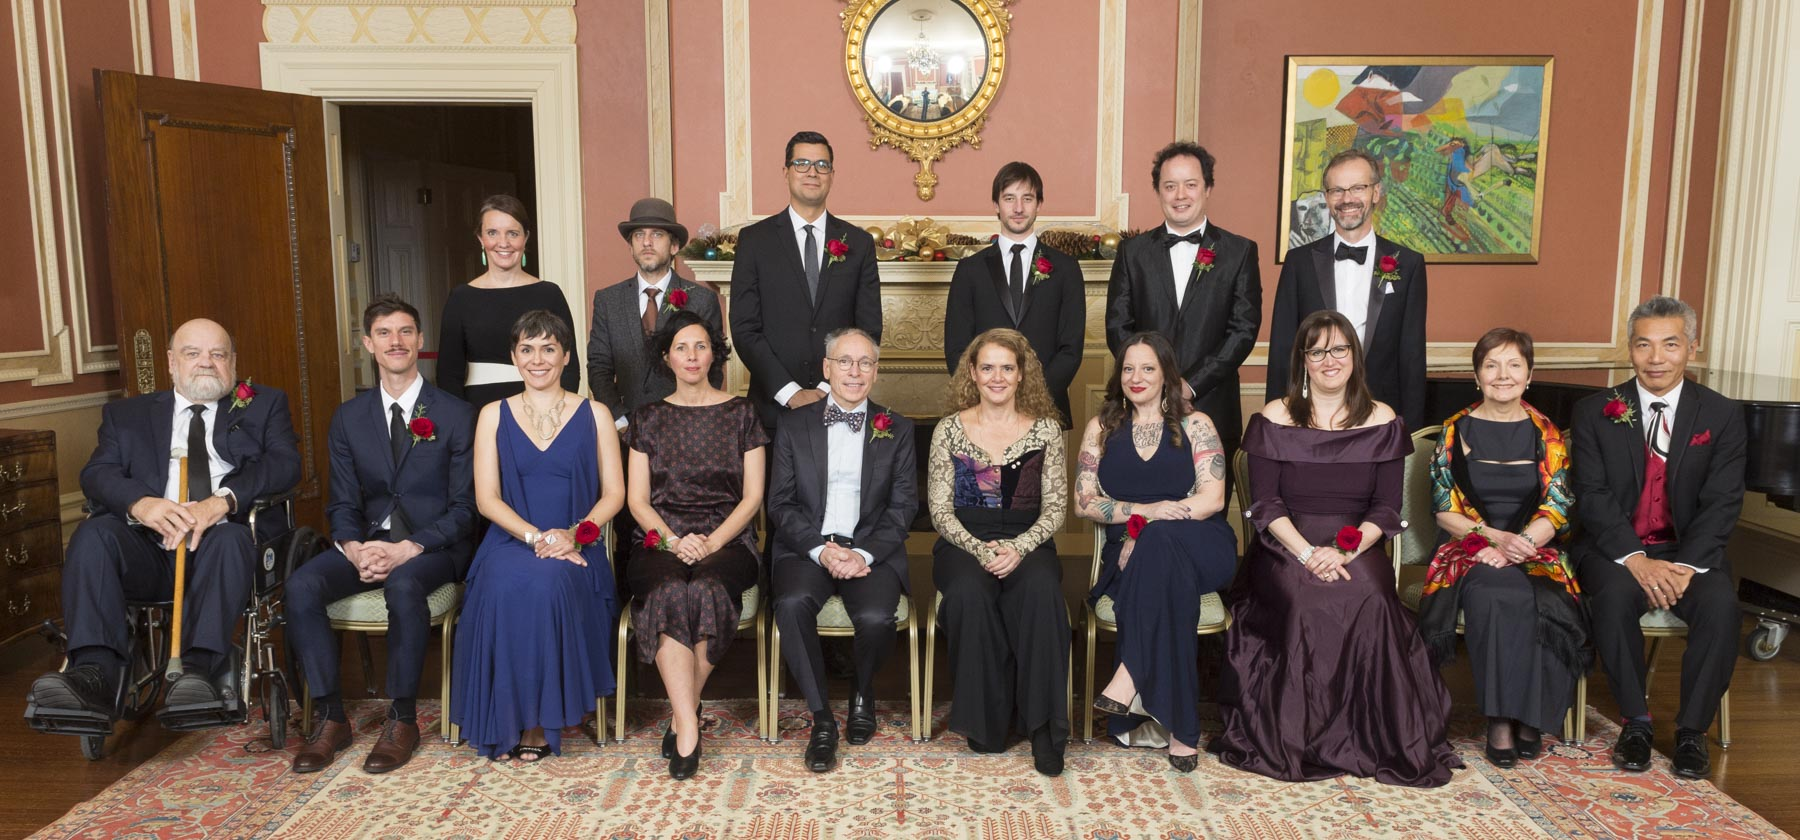 The Governor General's Literary Awards, administered by the Canada Council for the Arts, are Canada's oldest and most prestigious awards for English-and French-language Canadian literature.